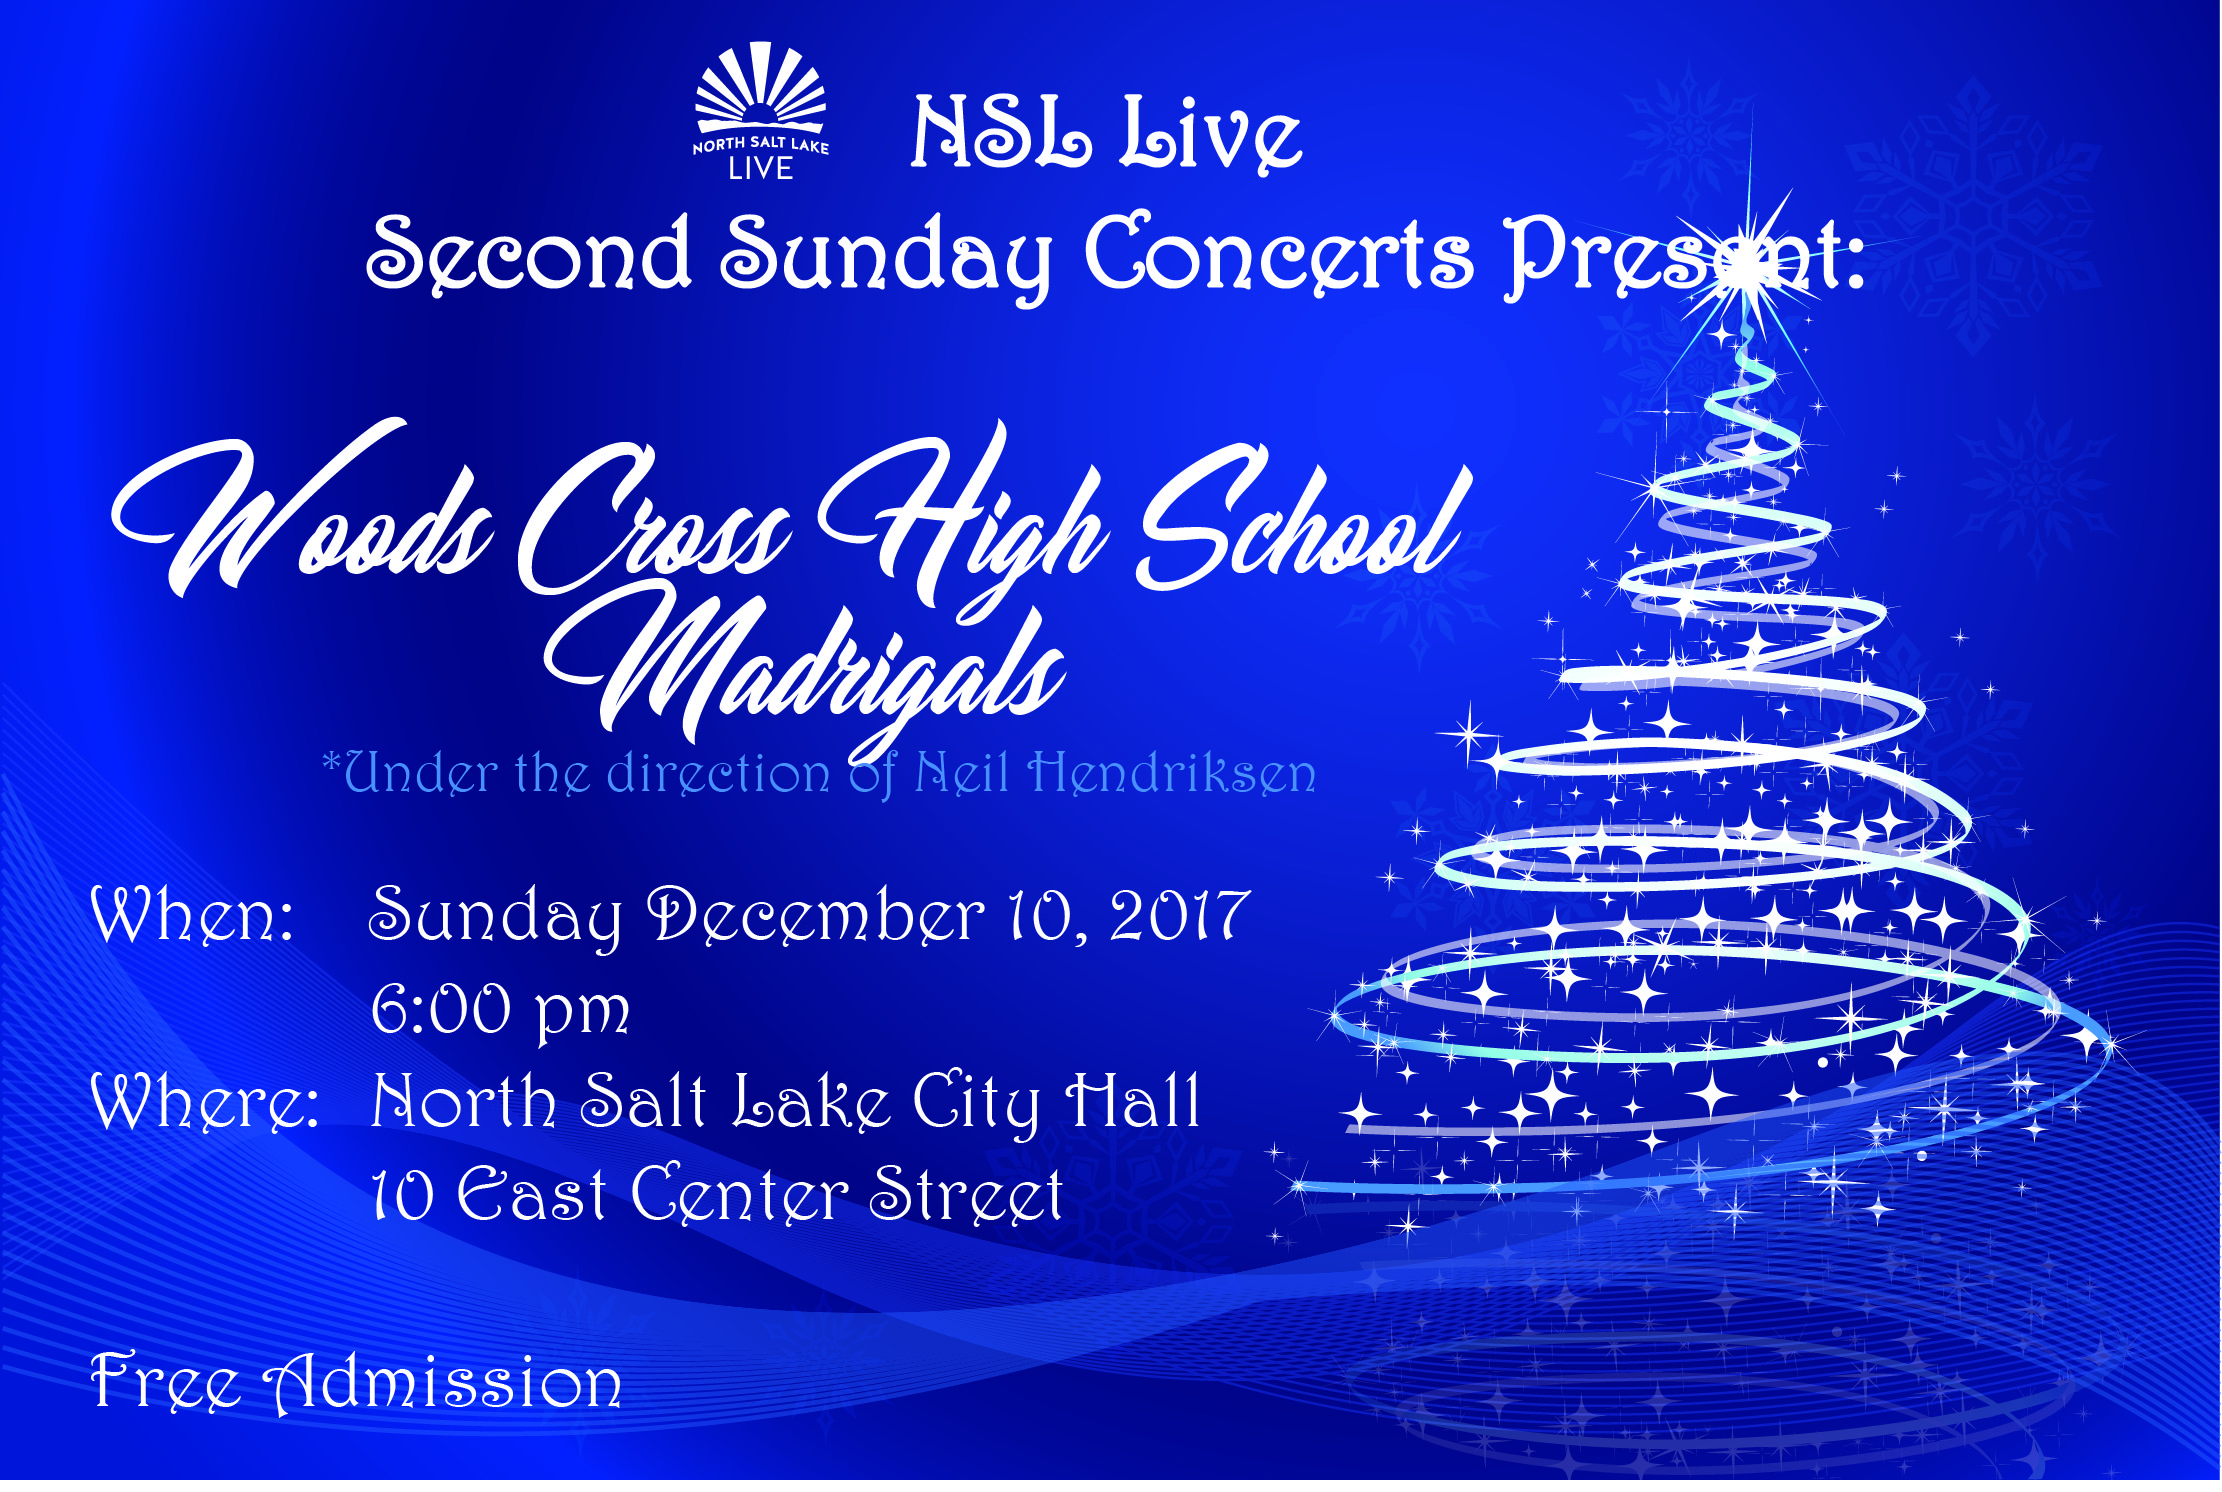 North salt lake ut official website 2017 christmasconcert wx madrigals 2g kristyandbryce Image collections